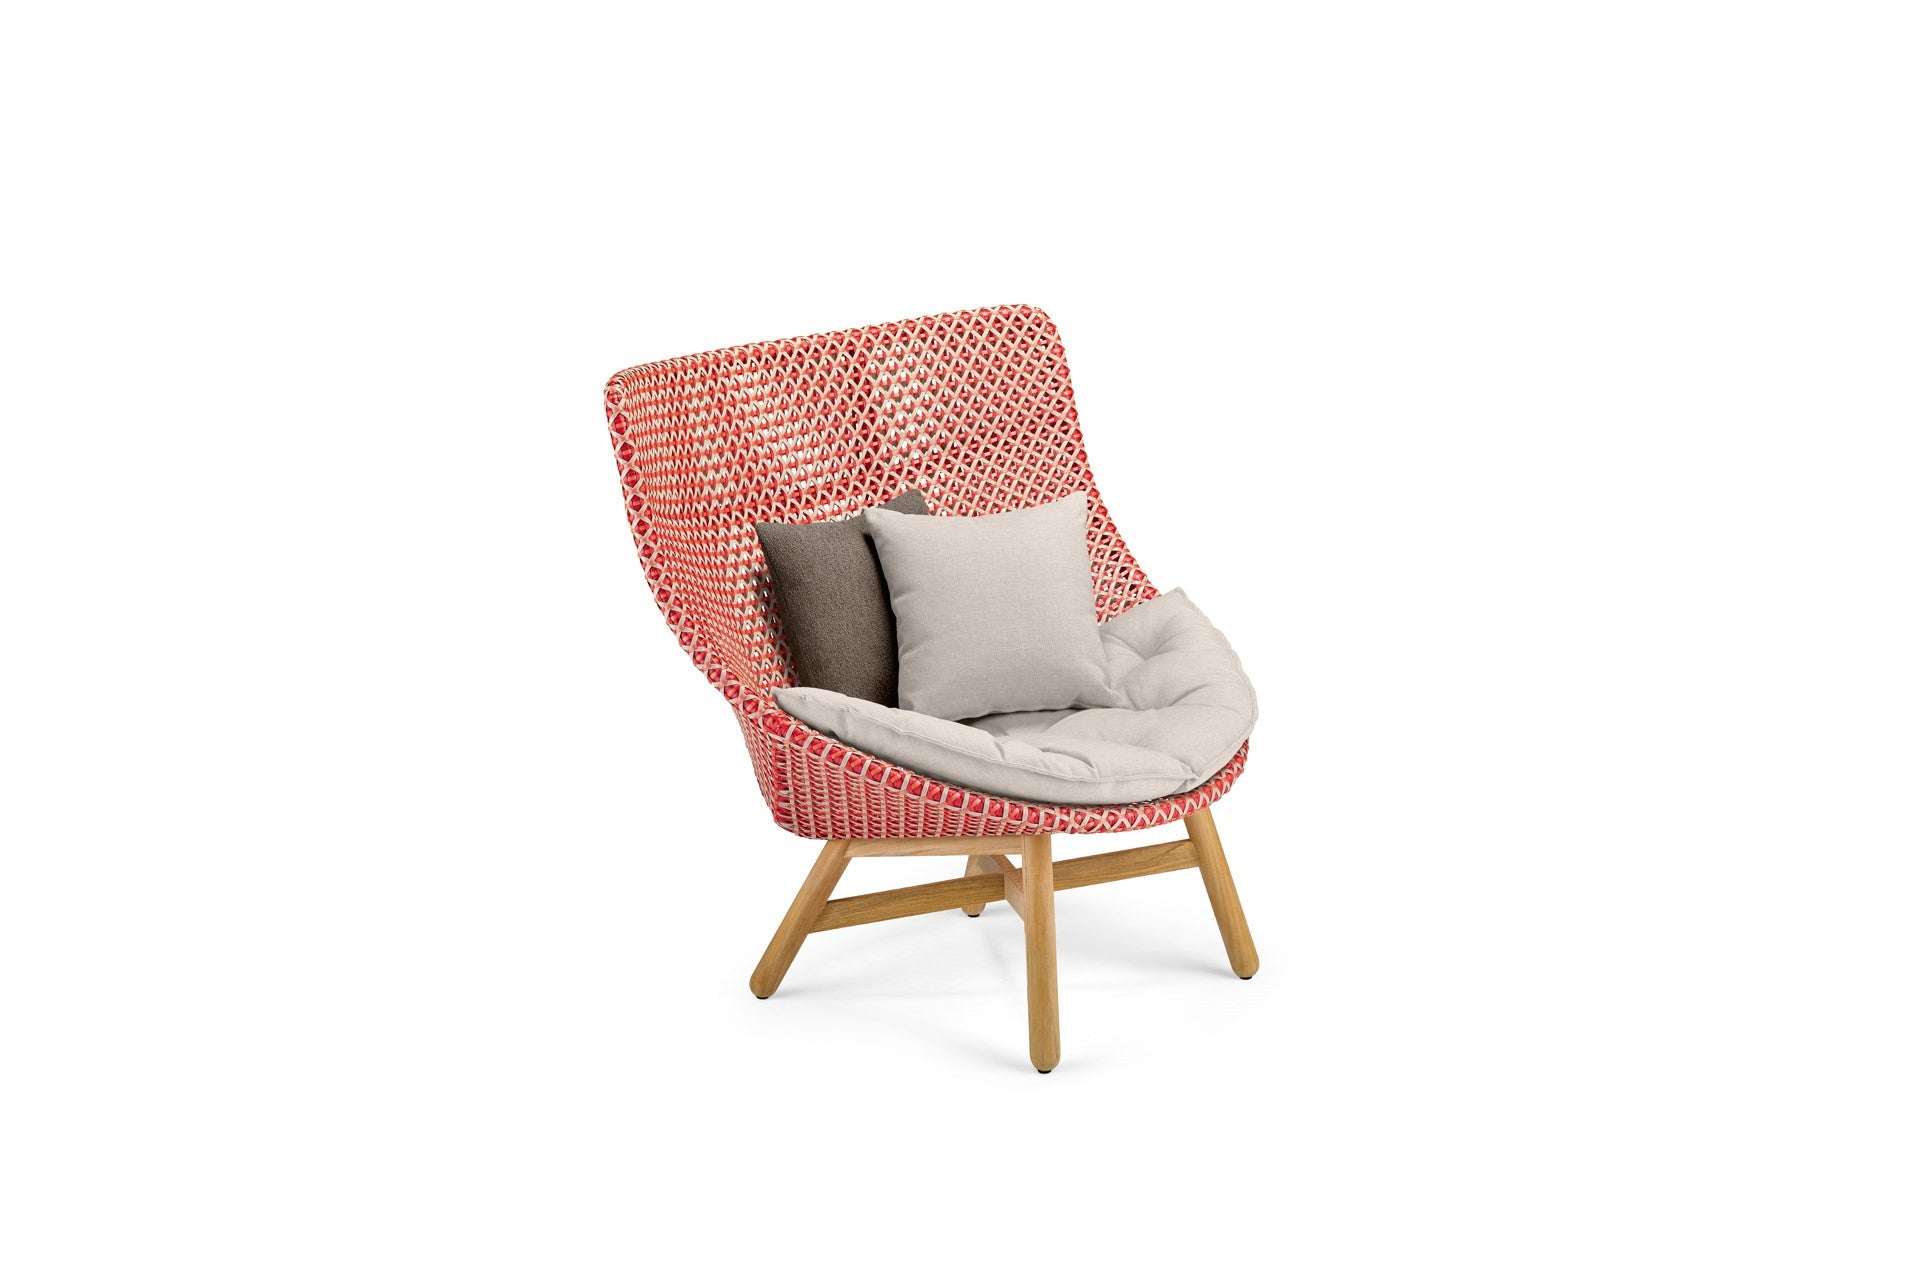 MBRACE WING BACK LOUNGE CHAIR By Dedon, Available At The Home Resource  Furniture Store Sarasota